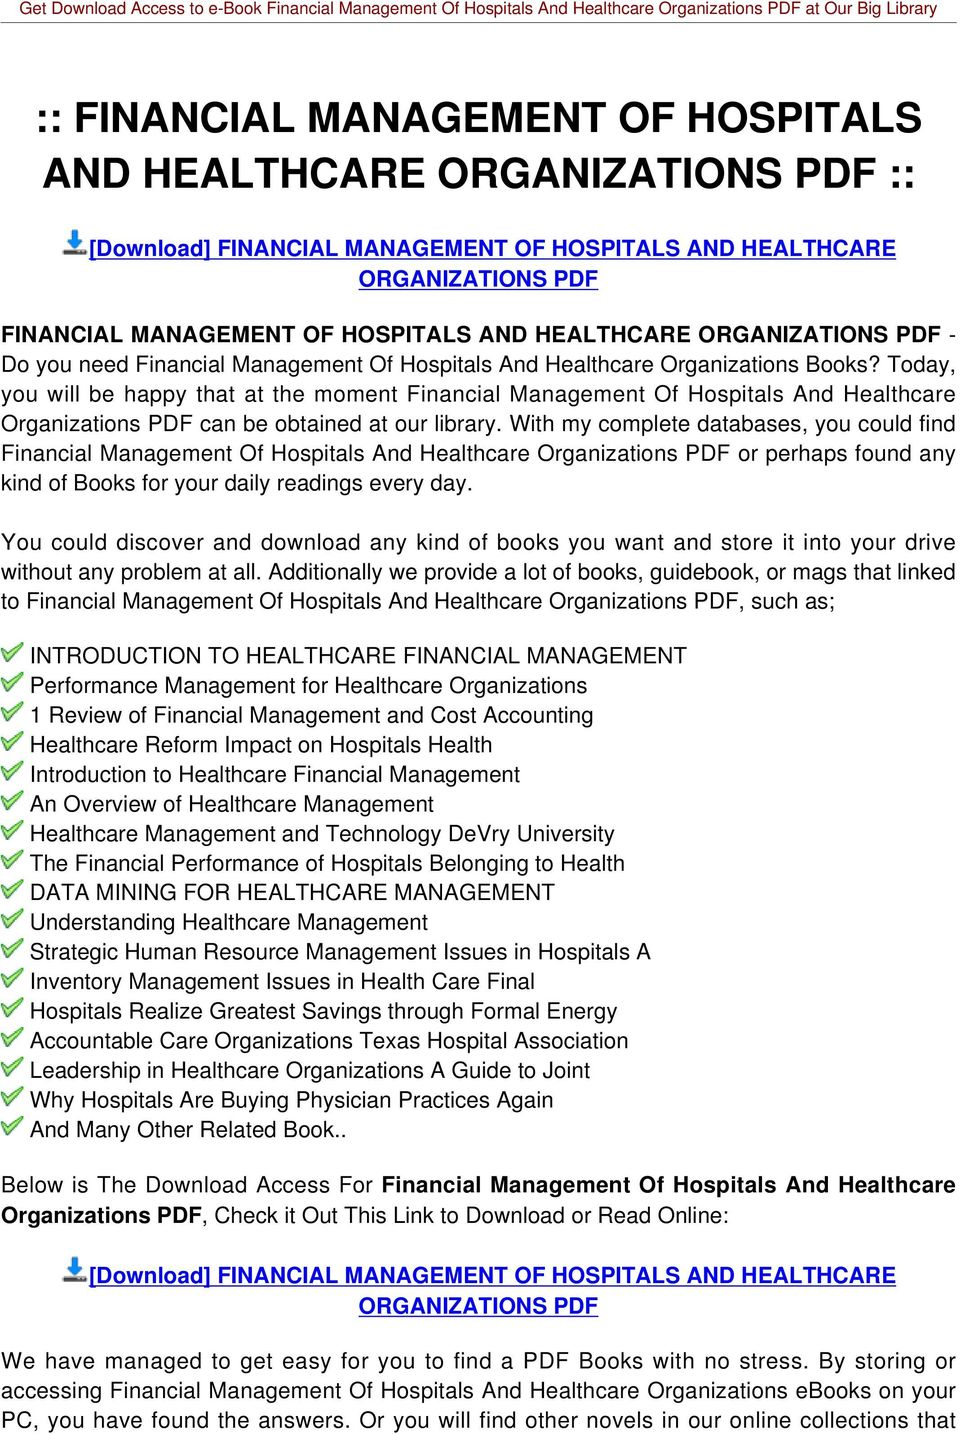 Today, you will be happy that at the moment Financial Management Of Hospitals And Healthcare Organizations PDF can be obtained at our library.